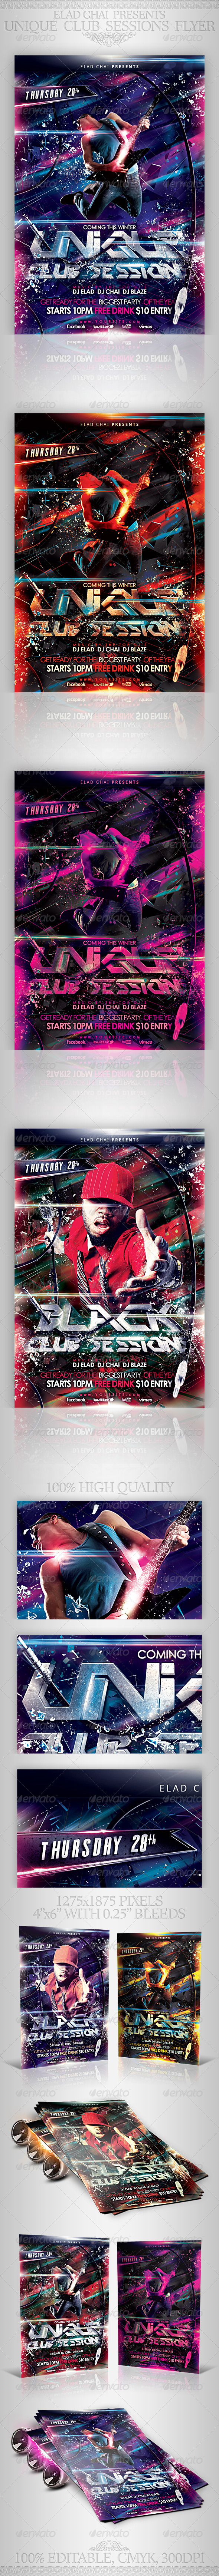 Unique Club Sessions Flyer Template - Clubs & Parties Events